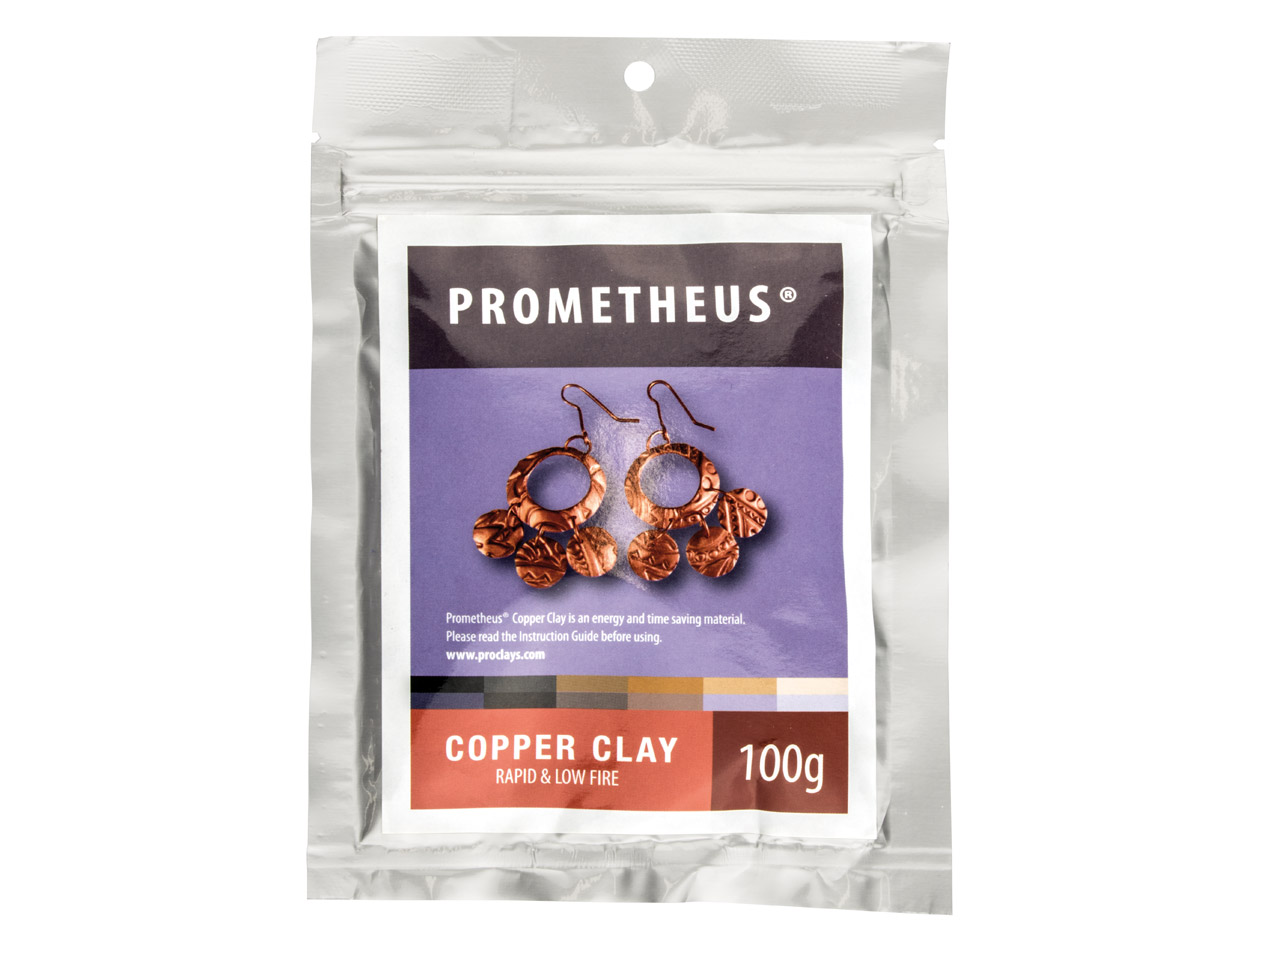 Prometheus Copper Clay 100g